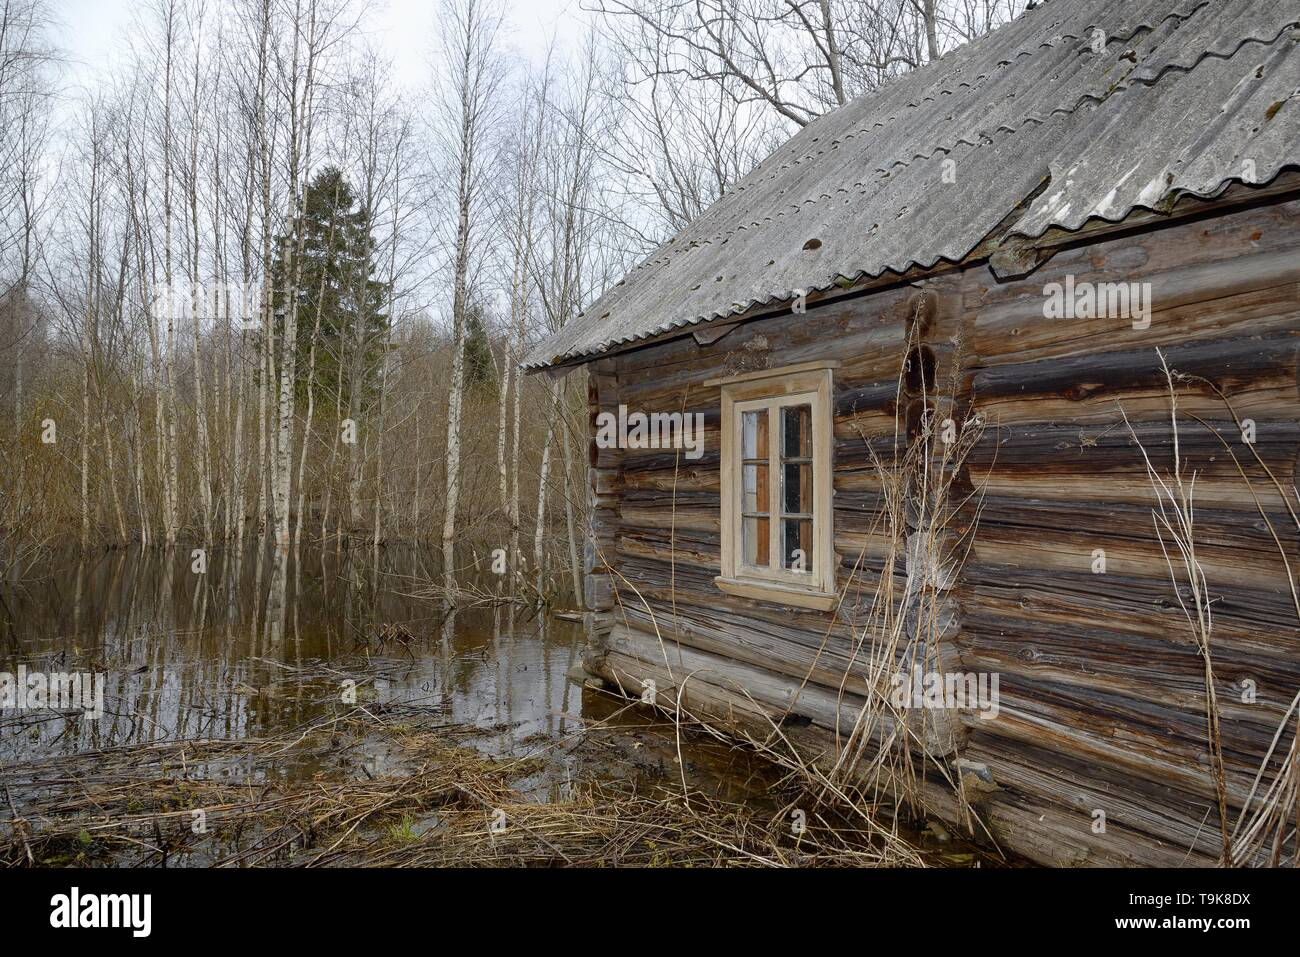 Derelict, abandoned cottage in woodland flooded by Eurasian beavers (Castor fiber) damming a river nearby, with several saplings recently cut by them  Stock Photo